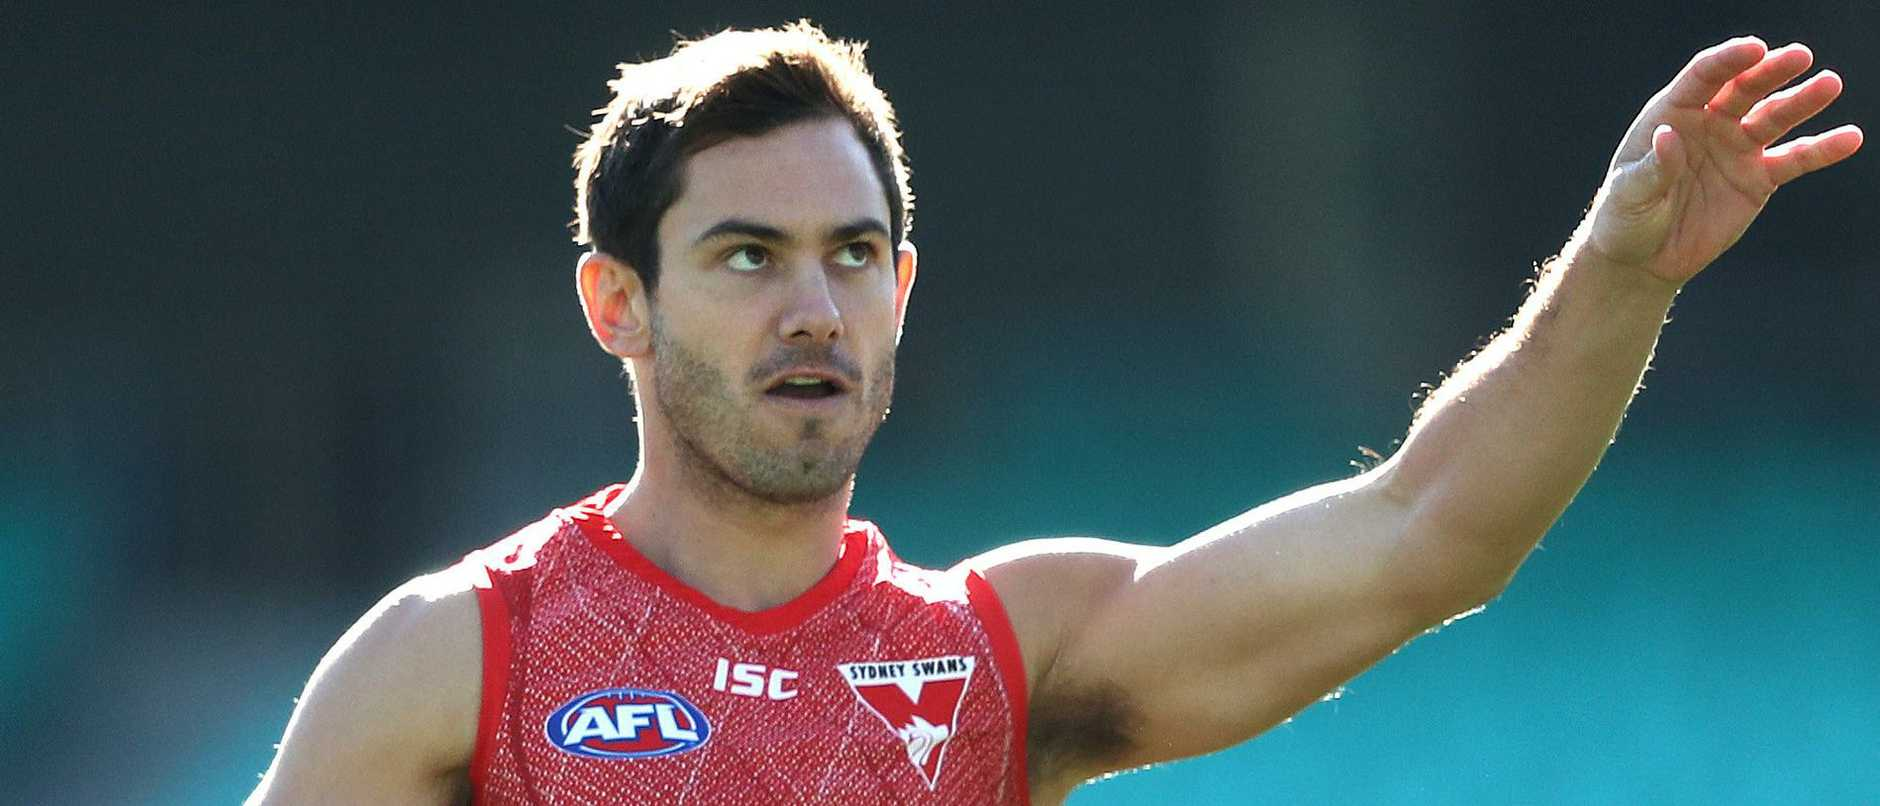 Police have accused former Swans forward Daniel Menzel of sexual touching without consent over an incident in Sydney last year.